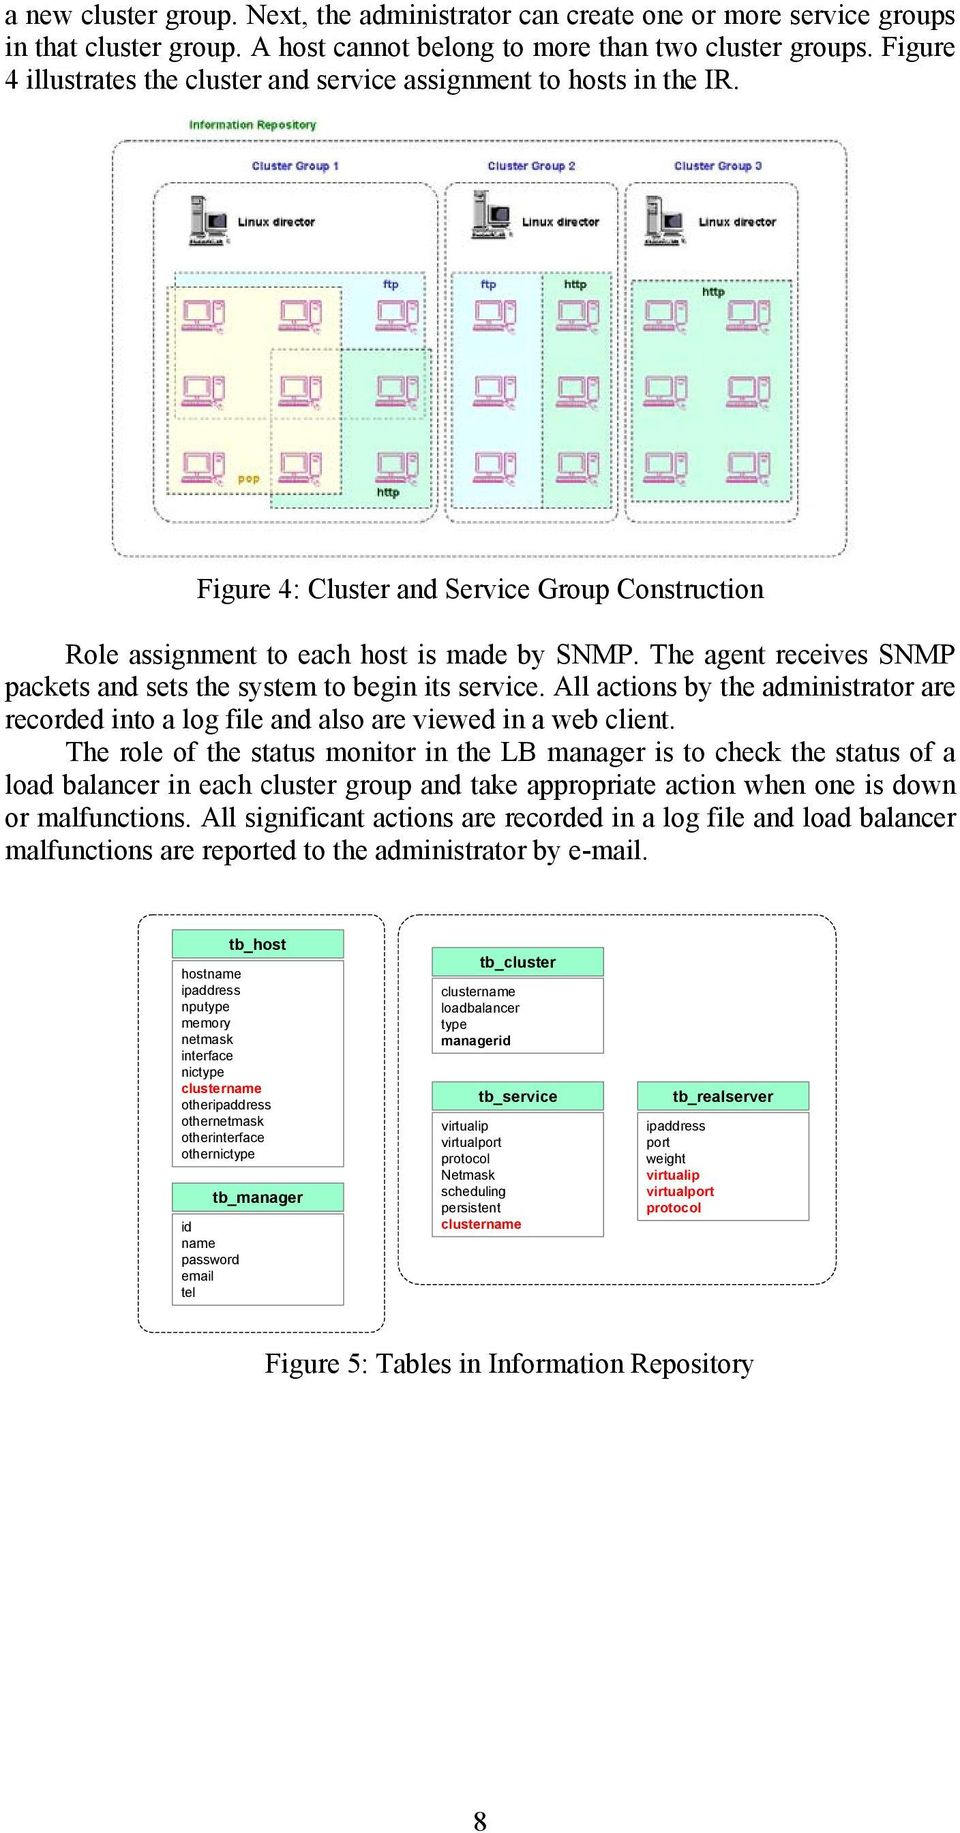 The agent receives SNMP packets and sets the system to begin its service. All actions by the administrator are recorded into a log file and also are viewed in a web client.